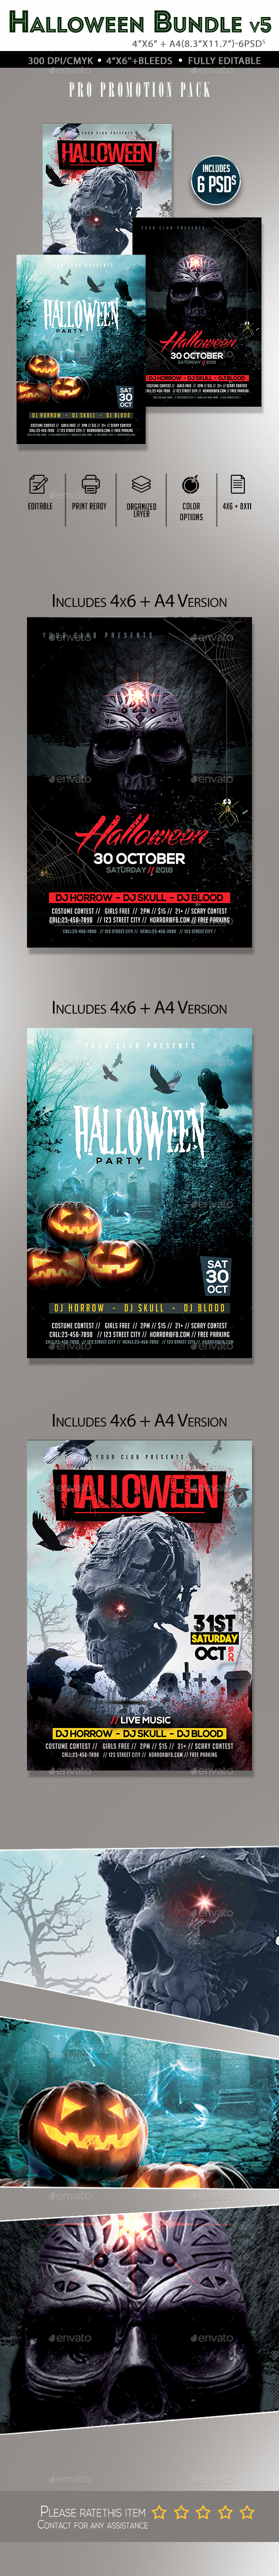 Halloween Flyer Bundle V5